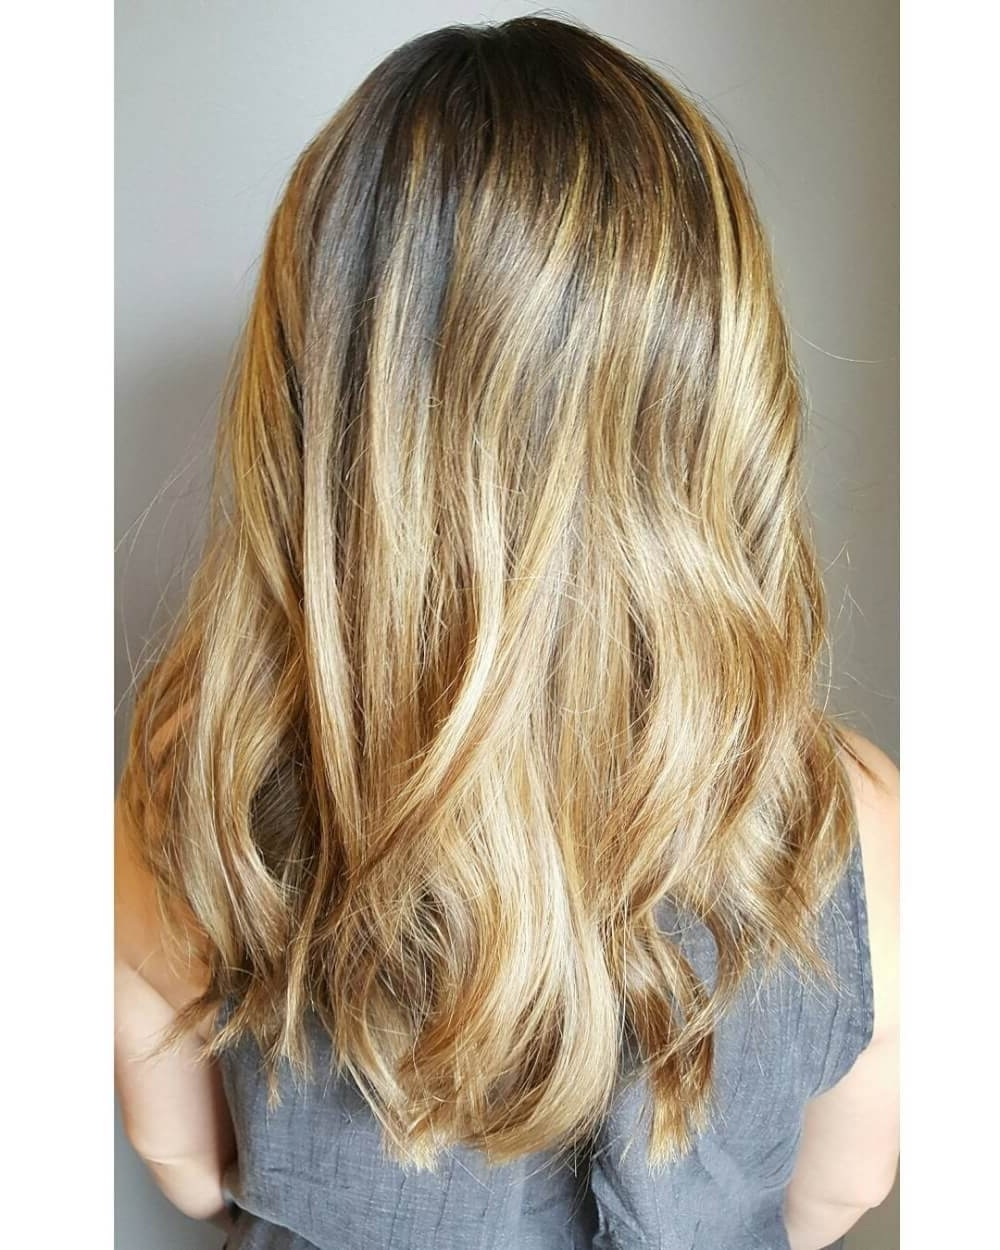 38 Top Blonde Highlights Of 2018 – Platinum, Ash, Dirty, Honey & Dark Intended For Well Known Icy Highlights And Loose Curls Blonde Hairstyles (View 2 of 20)